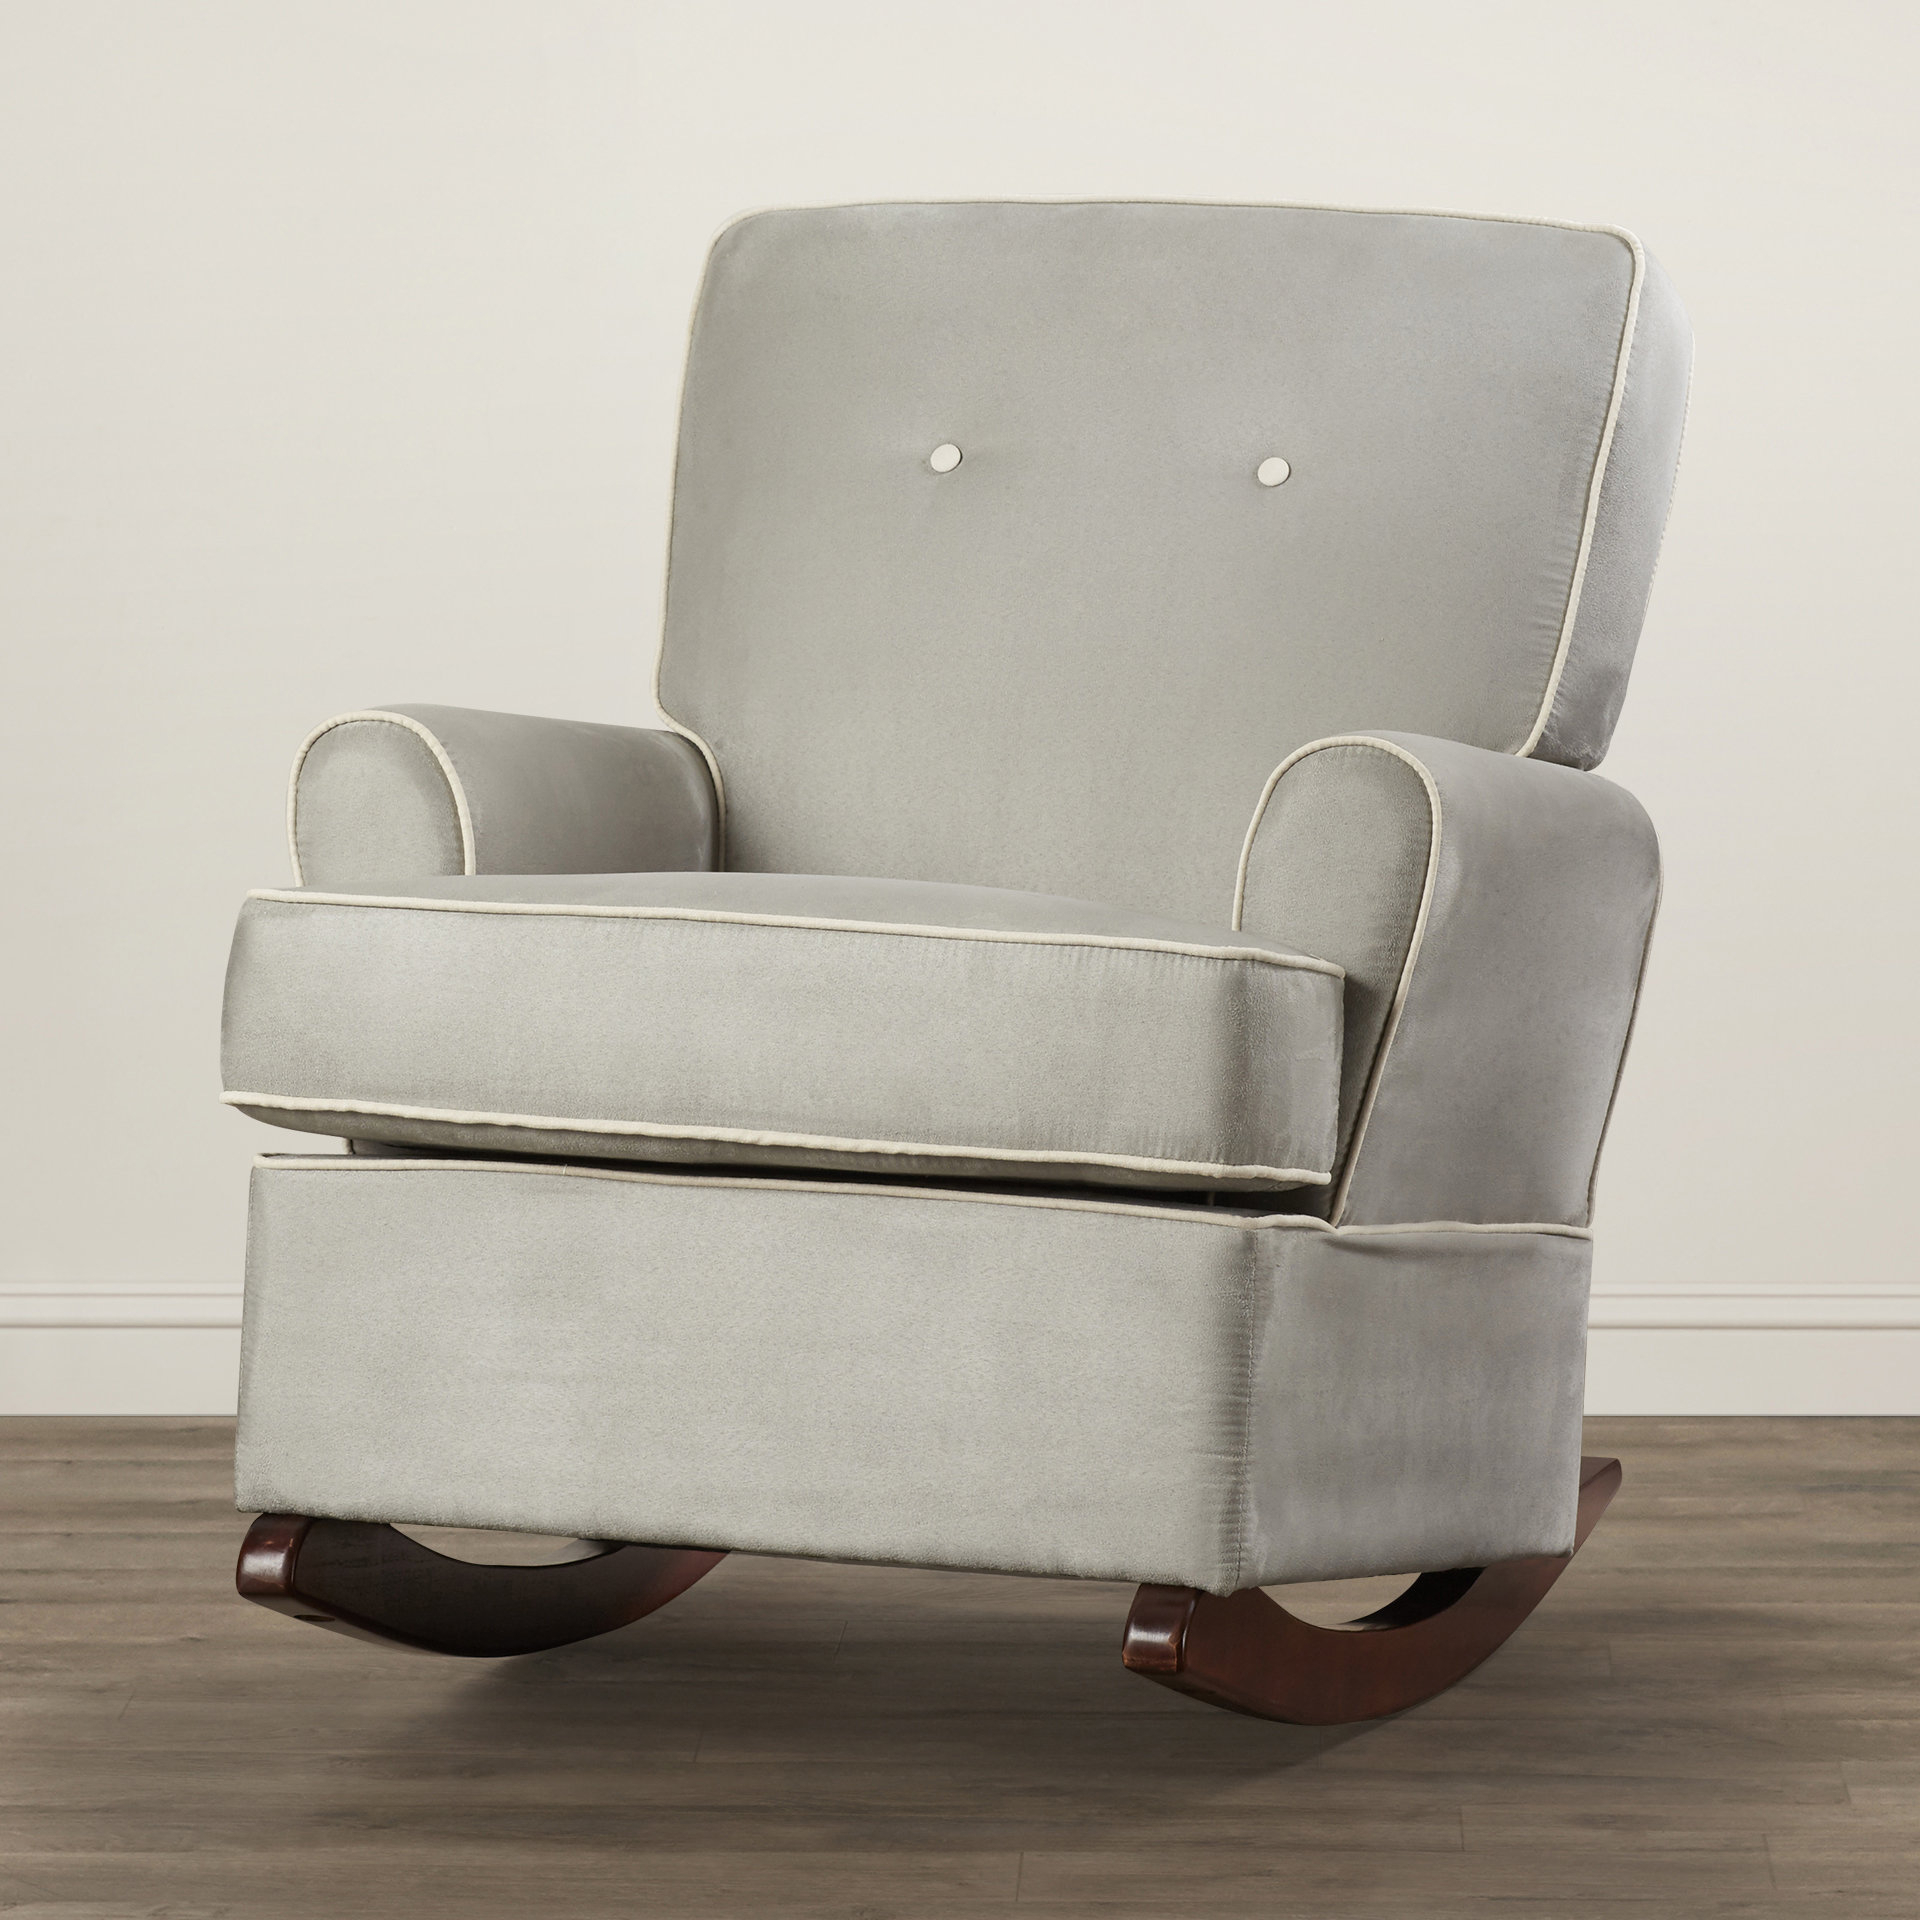 Viv + Rae Shaylee Rocker & Reviews | Wayfair In Bailey Mist Track Arm Skirted Swivel Gliders (Image 20 of 20)